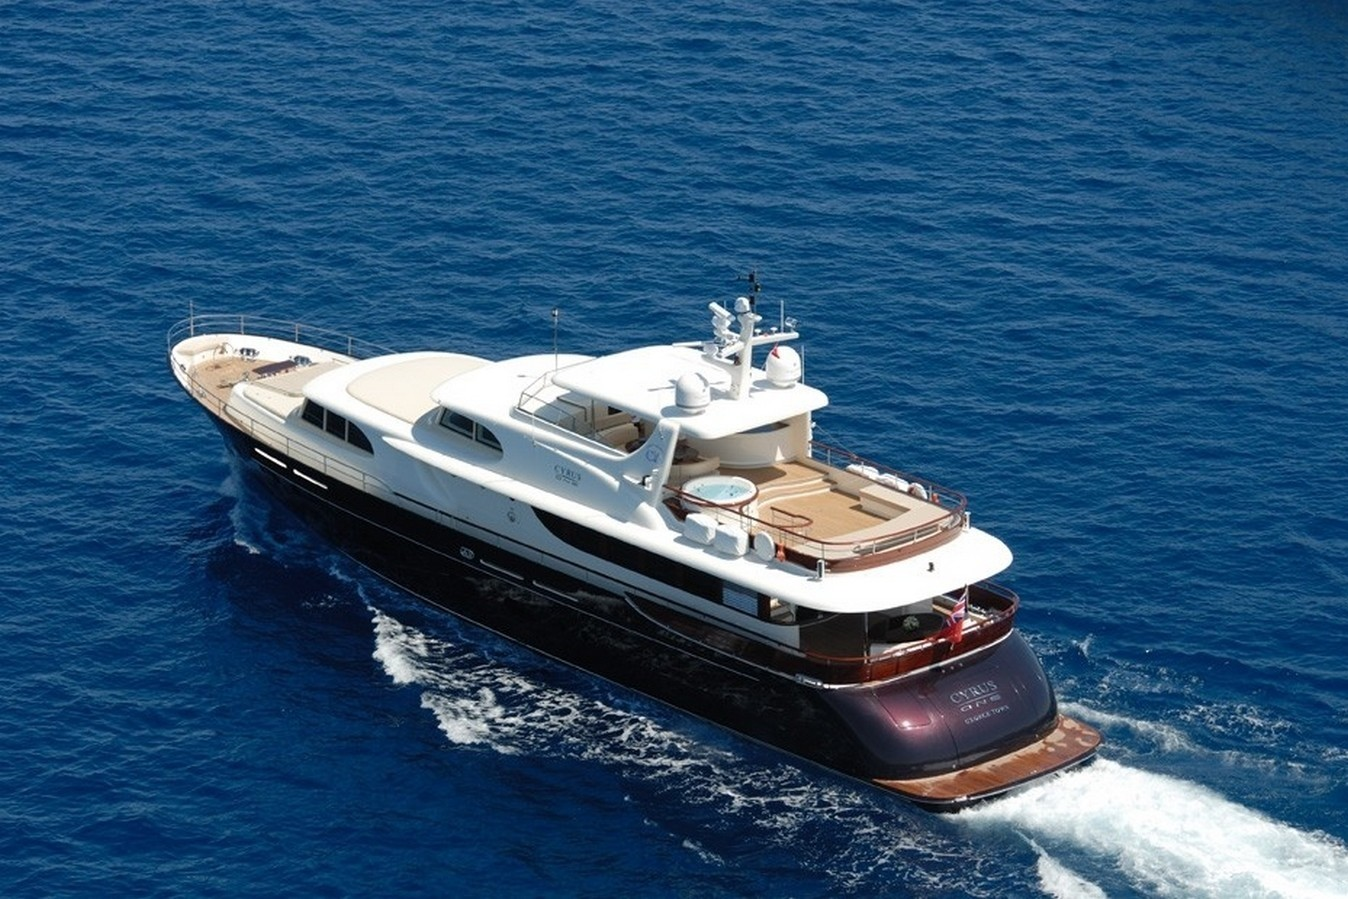 The 34m Yacht CYRUS ONE